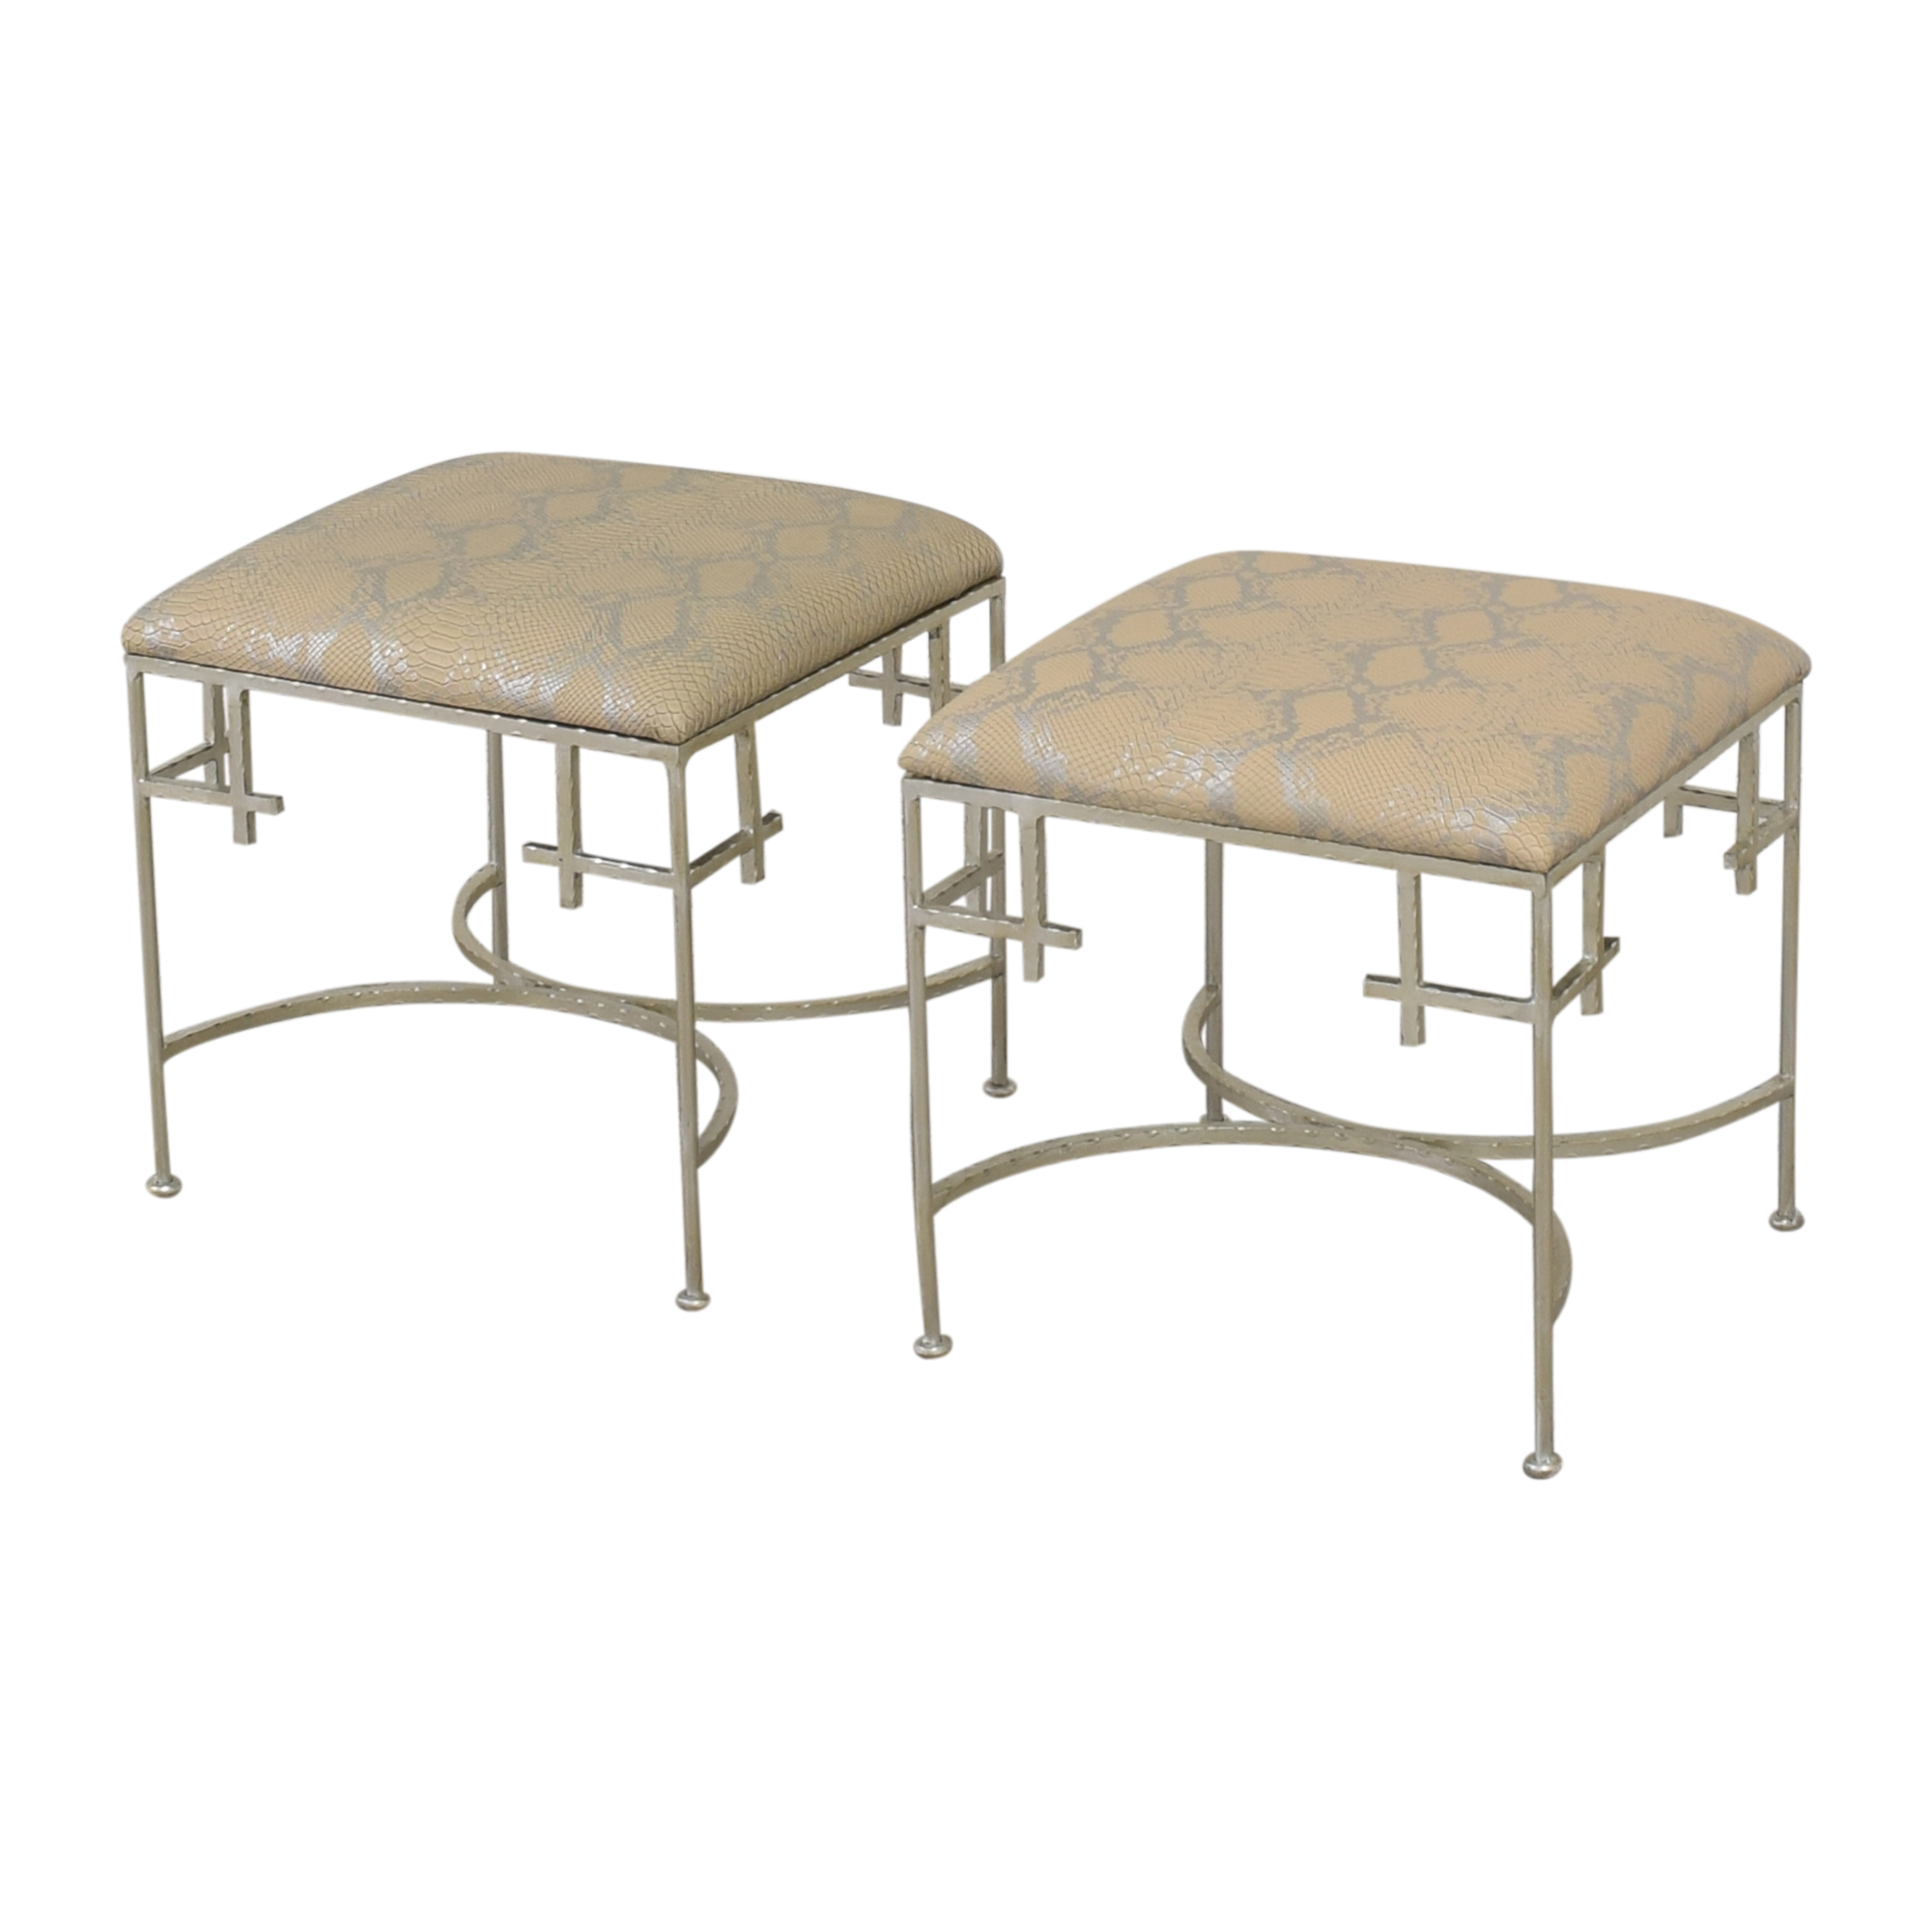 Worlds Away Worlds Away Lolita Stools for sale